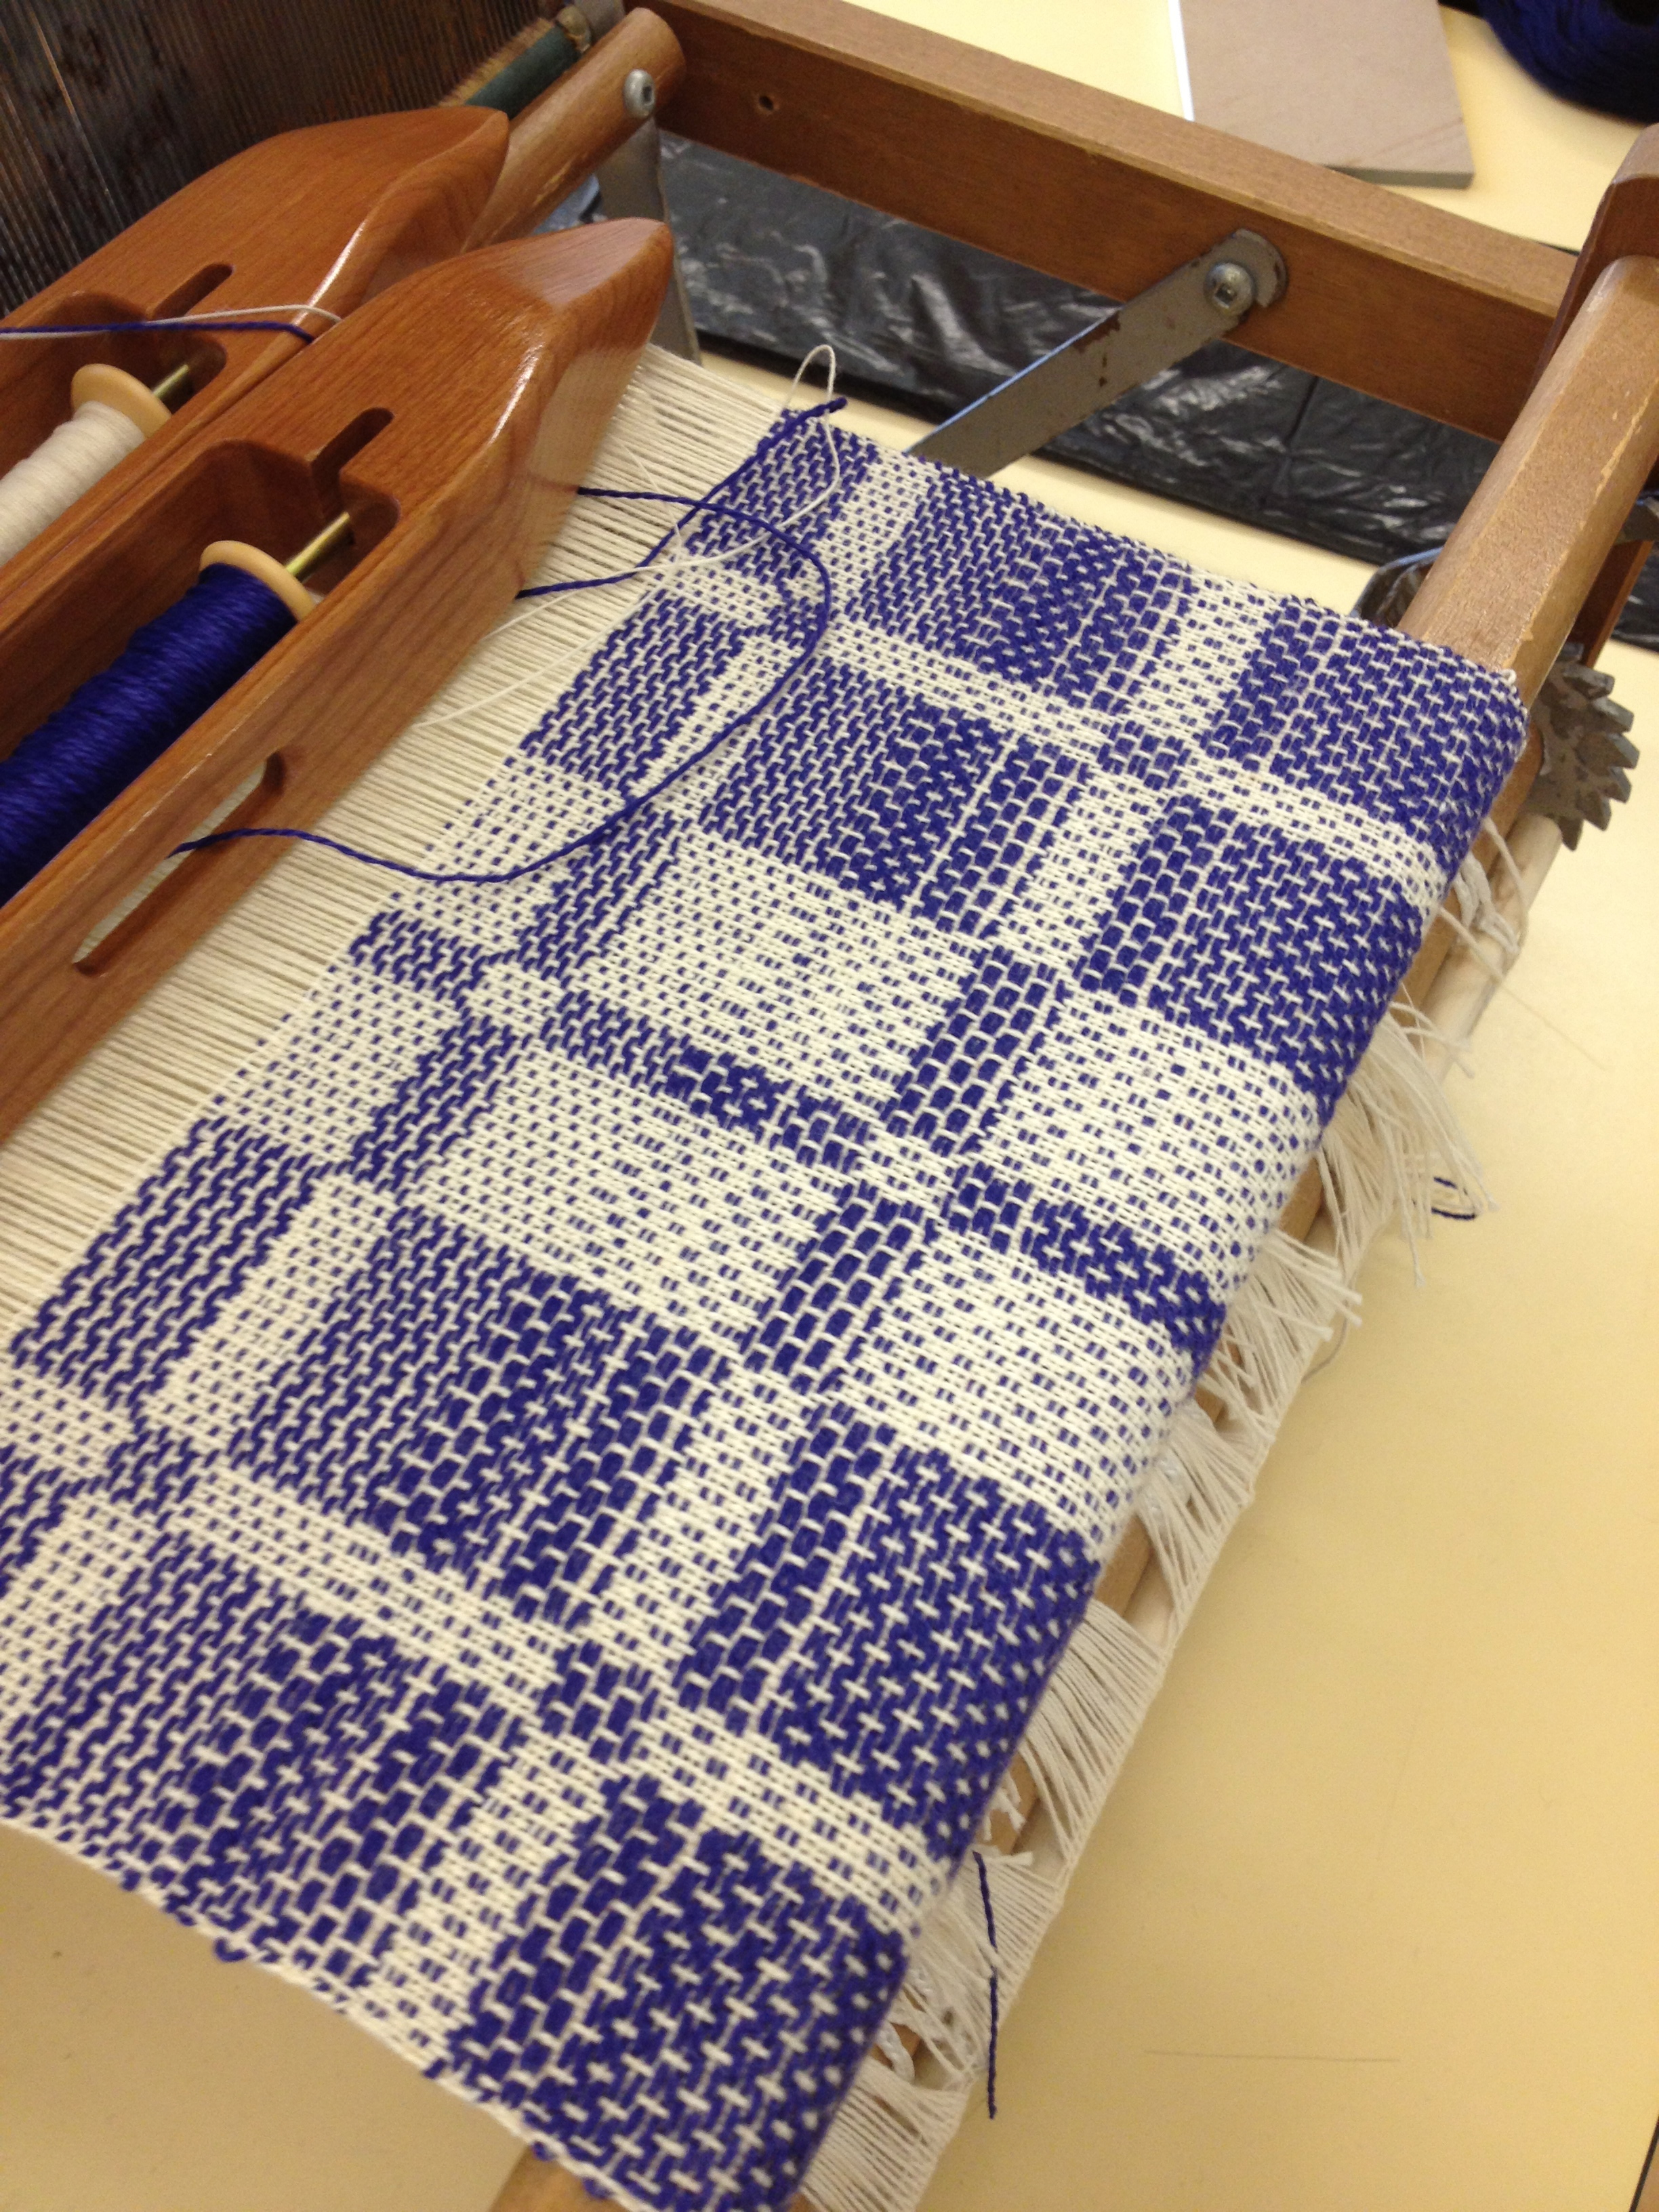 Summer & Winter block weaving from the workshop.